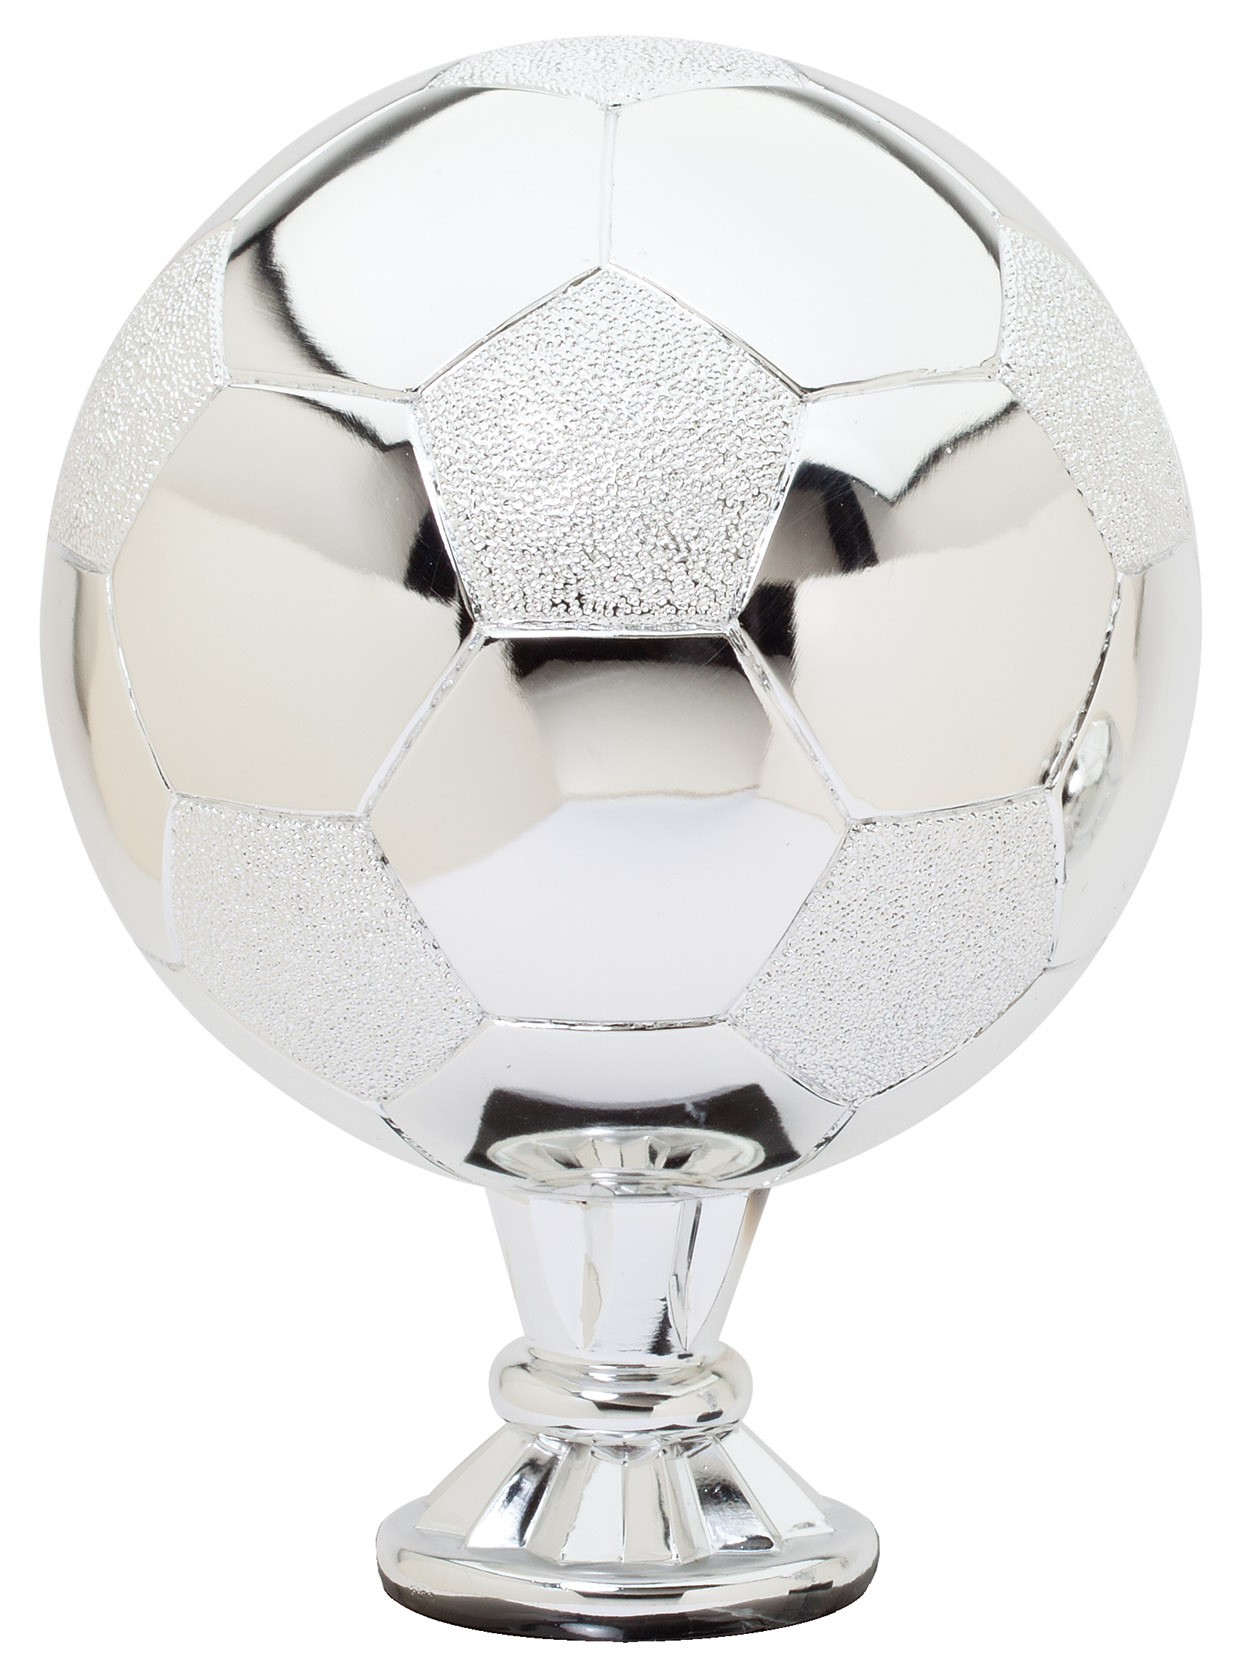 """Soccer - Silver   RG3213 - 11.5"""" tall  Price = $109"""